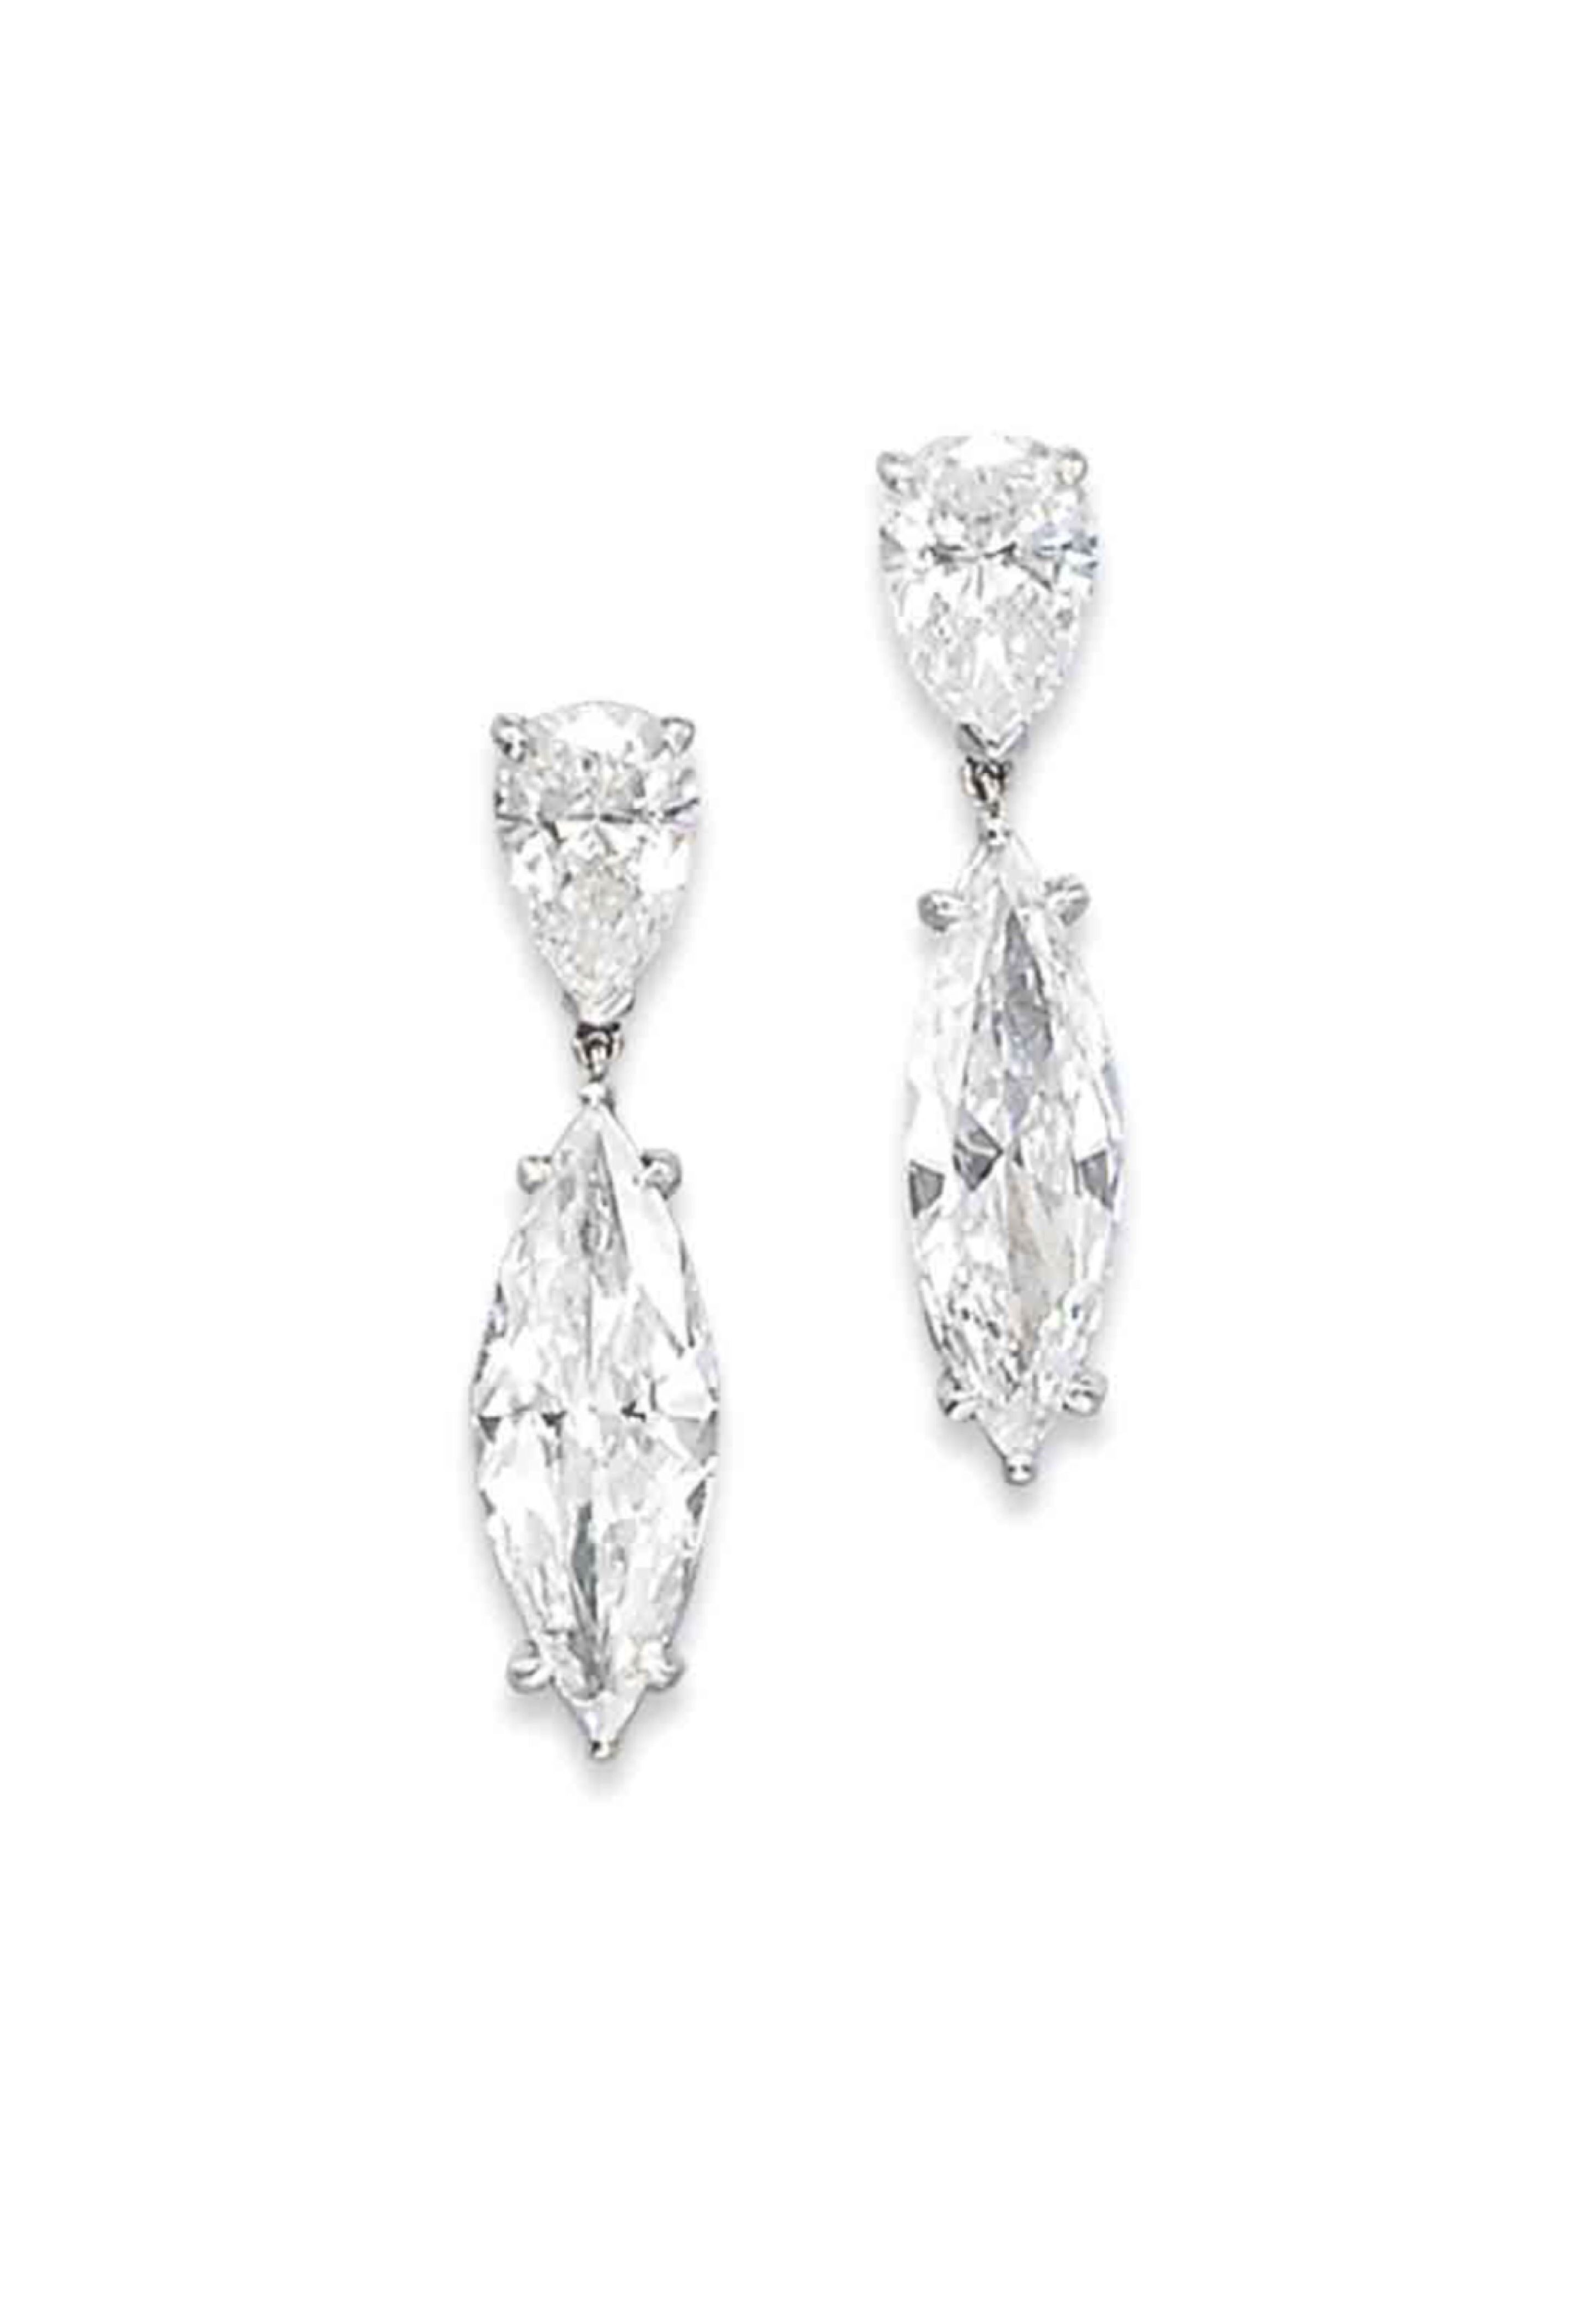 A Pair Of Diamond Earrings The Two Marquise Cut Pendants Weighing 2 46 And 01 Carats Suspended From Pear Shaped Tops